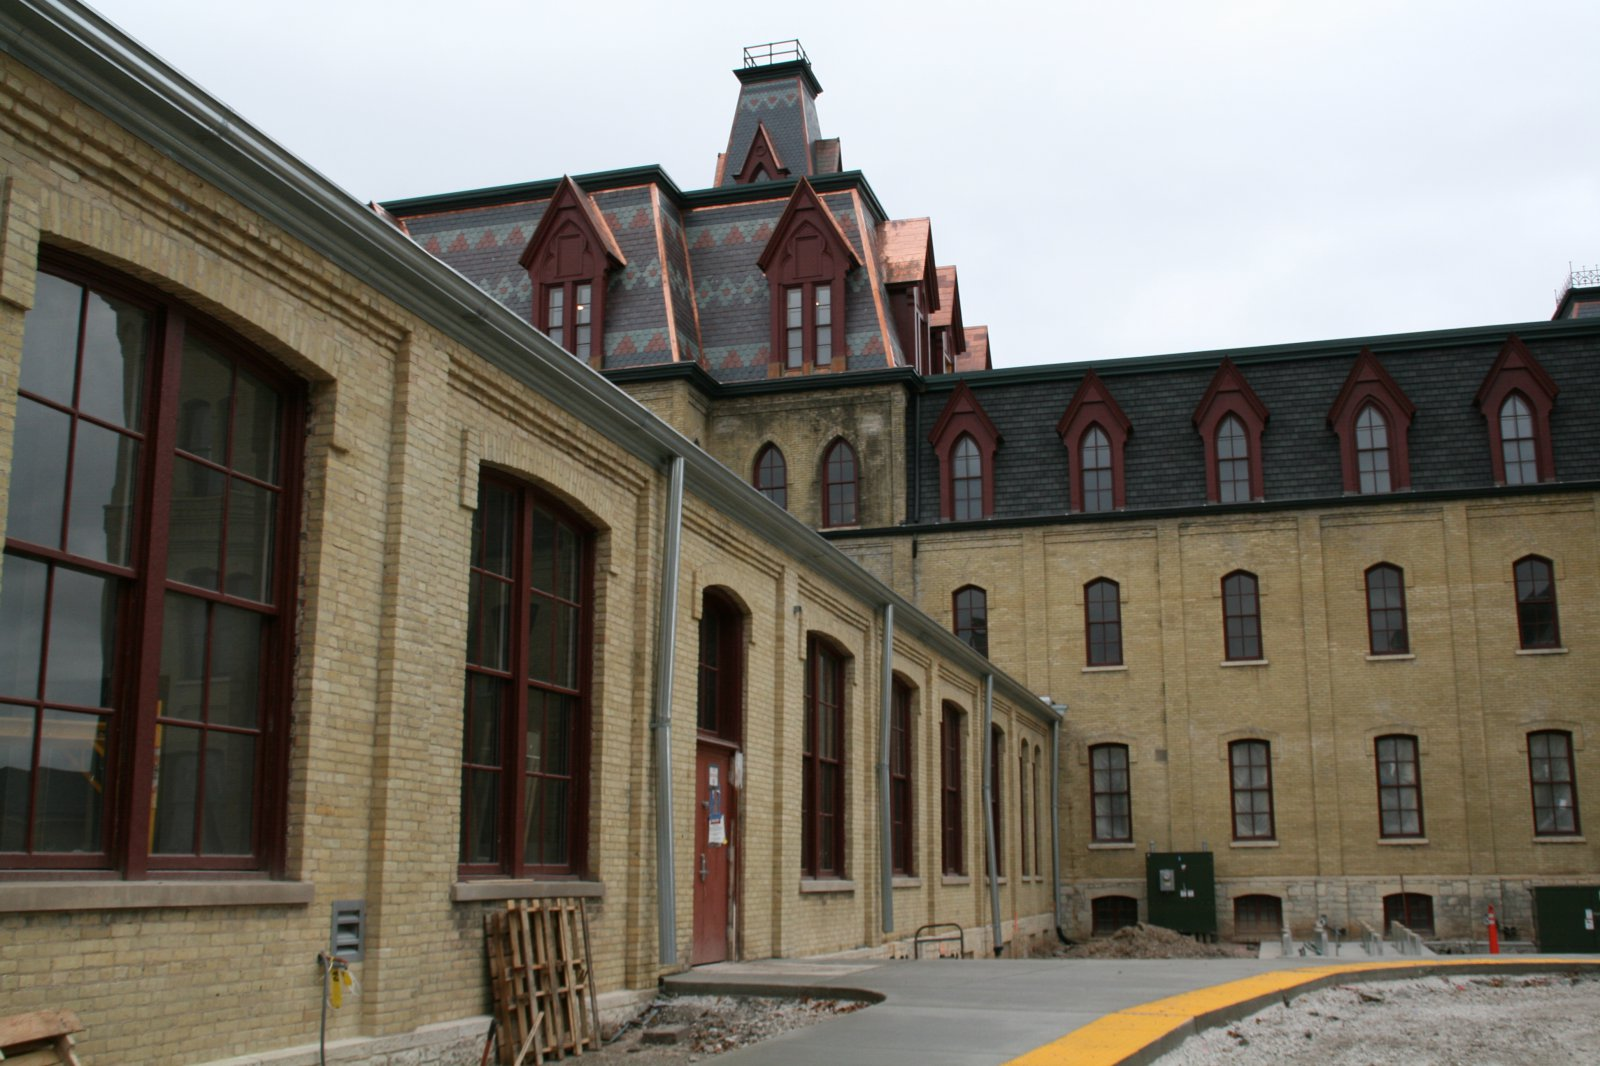 Rear of Old Main